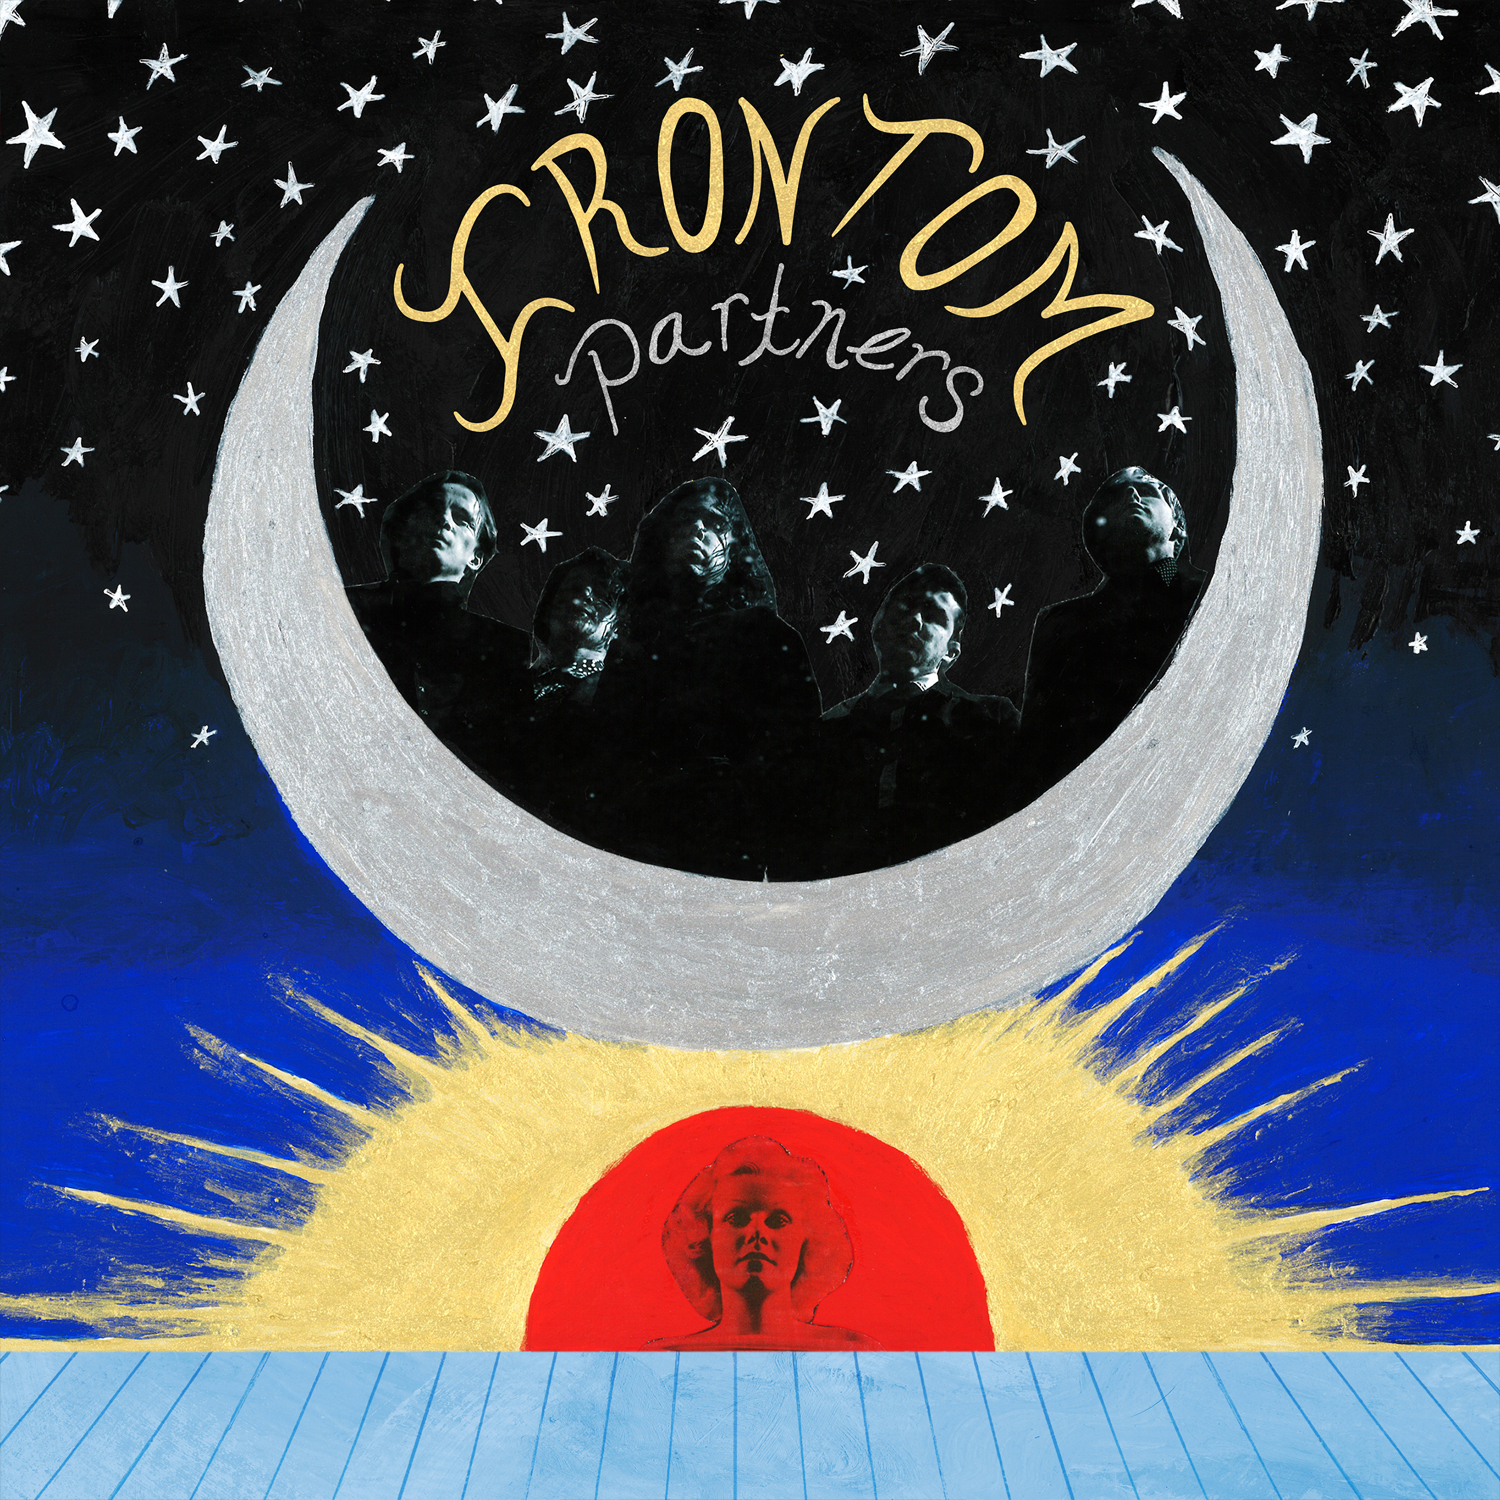 IRONTOM, Pre-Order 'Partners' on Apple Music